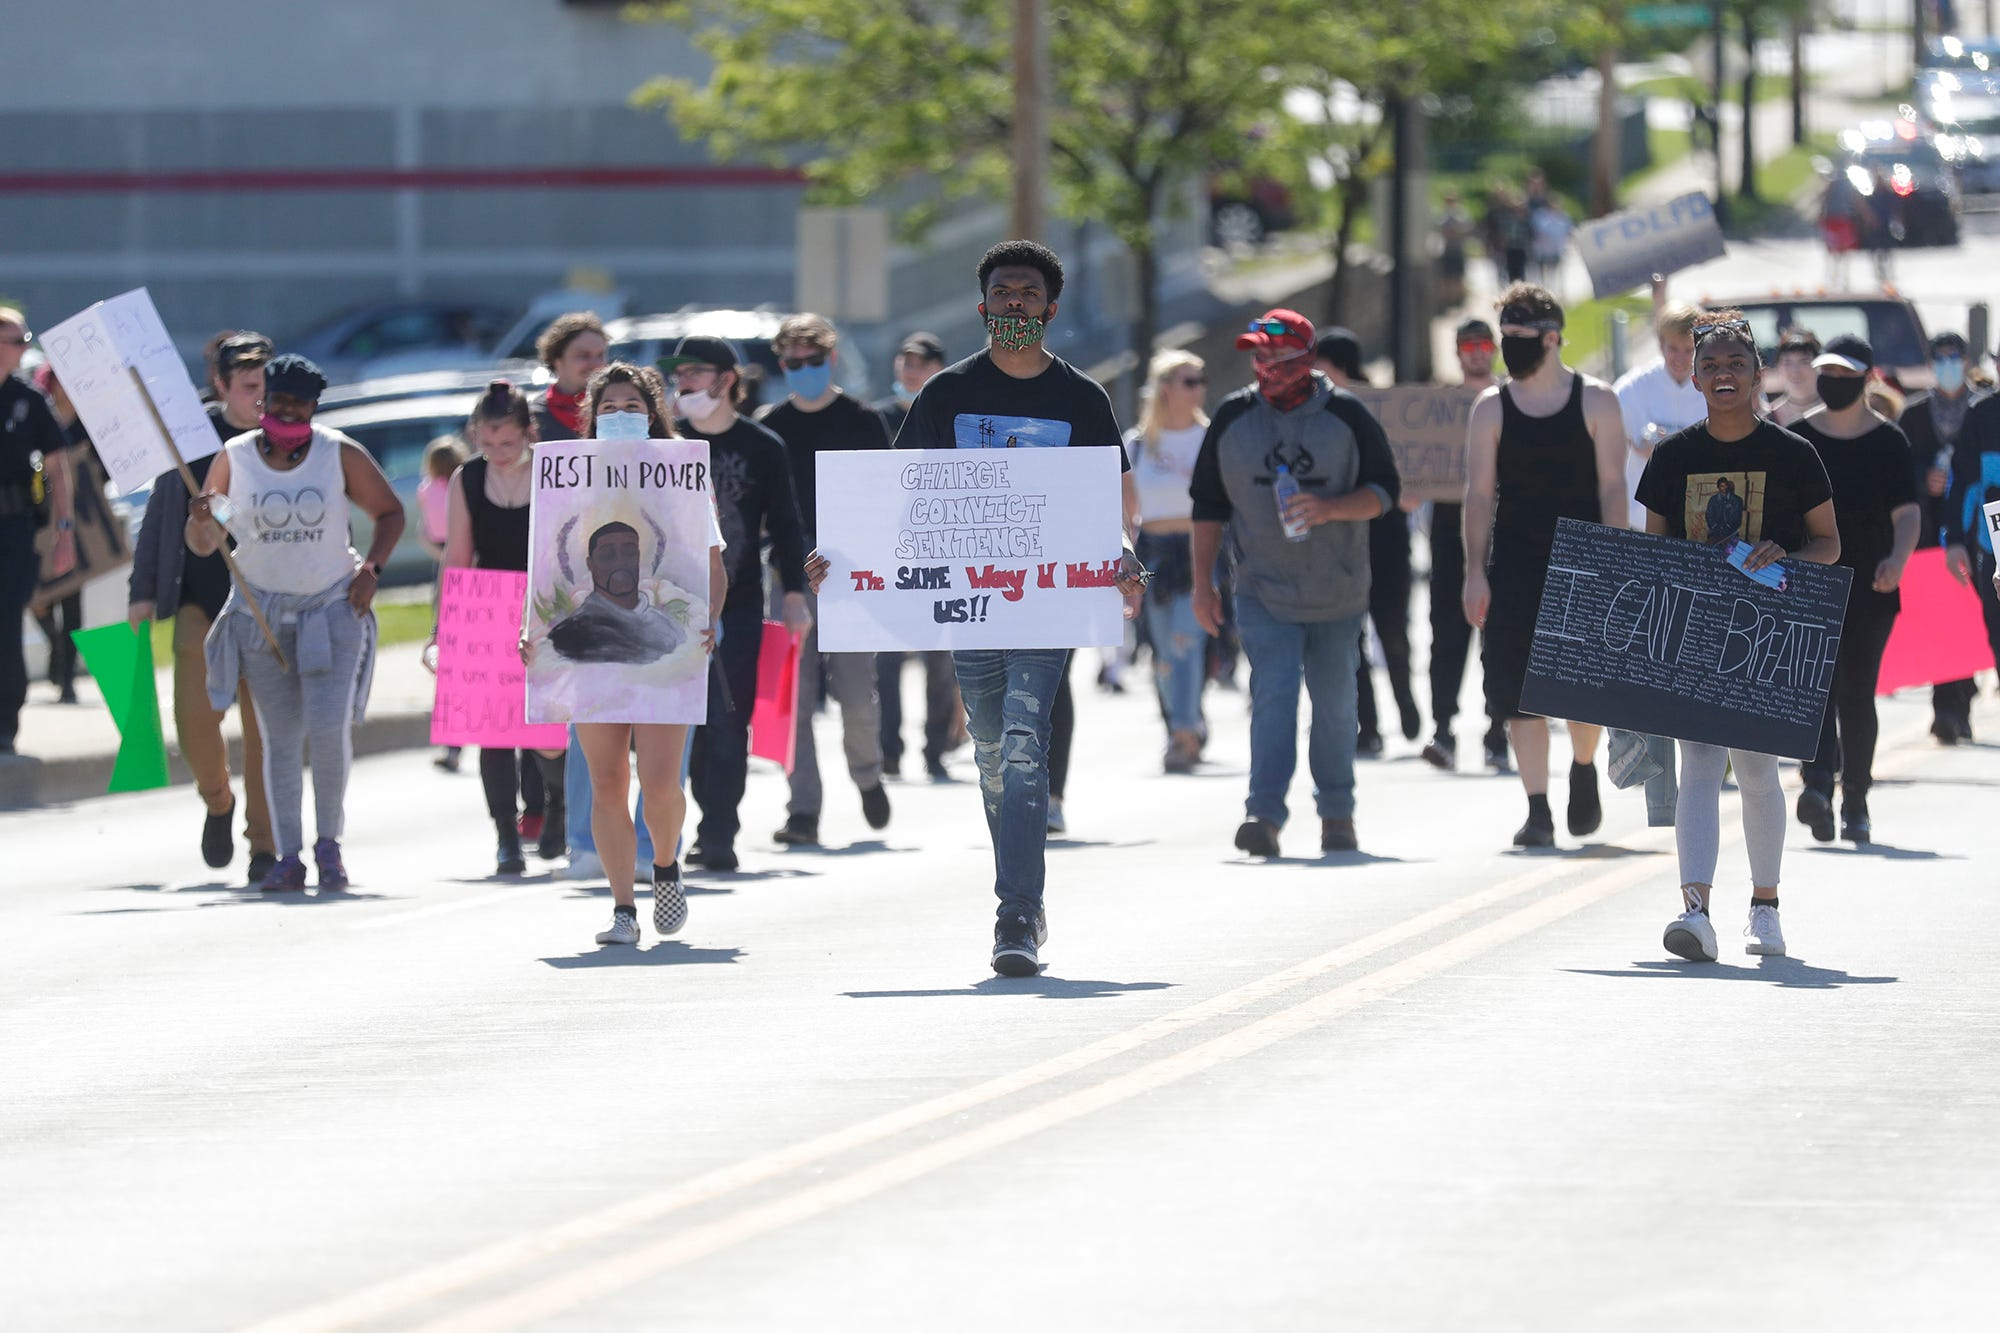 Dozens of people walk in protest Sunday, May 31, 2020, on Johnson Street in Fond du Lac, Wis. The group is protesting police brutality toward blacks stemming from an incident that occurred in Minneapolis, Minnesota, on May 25, 2020, when George Floyd was killed while being taken into police custody.